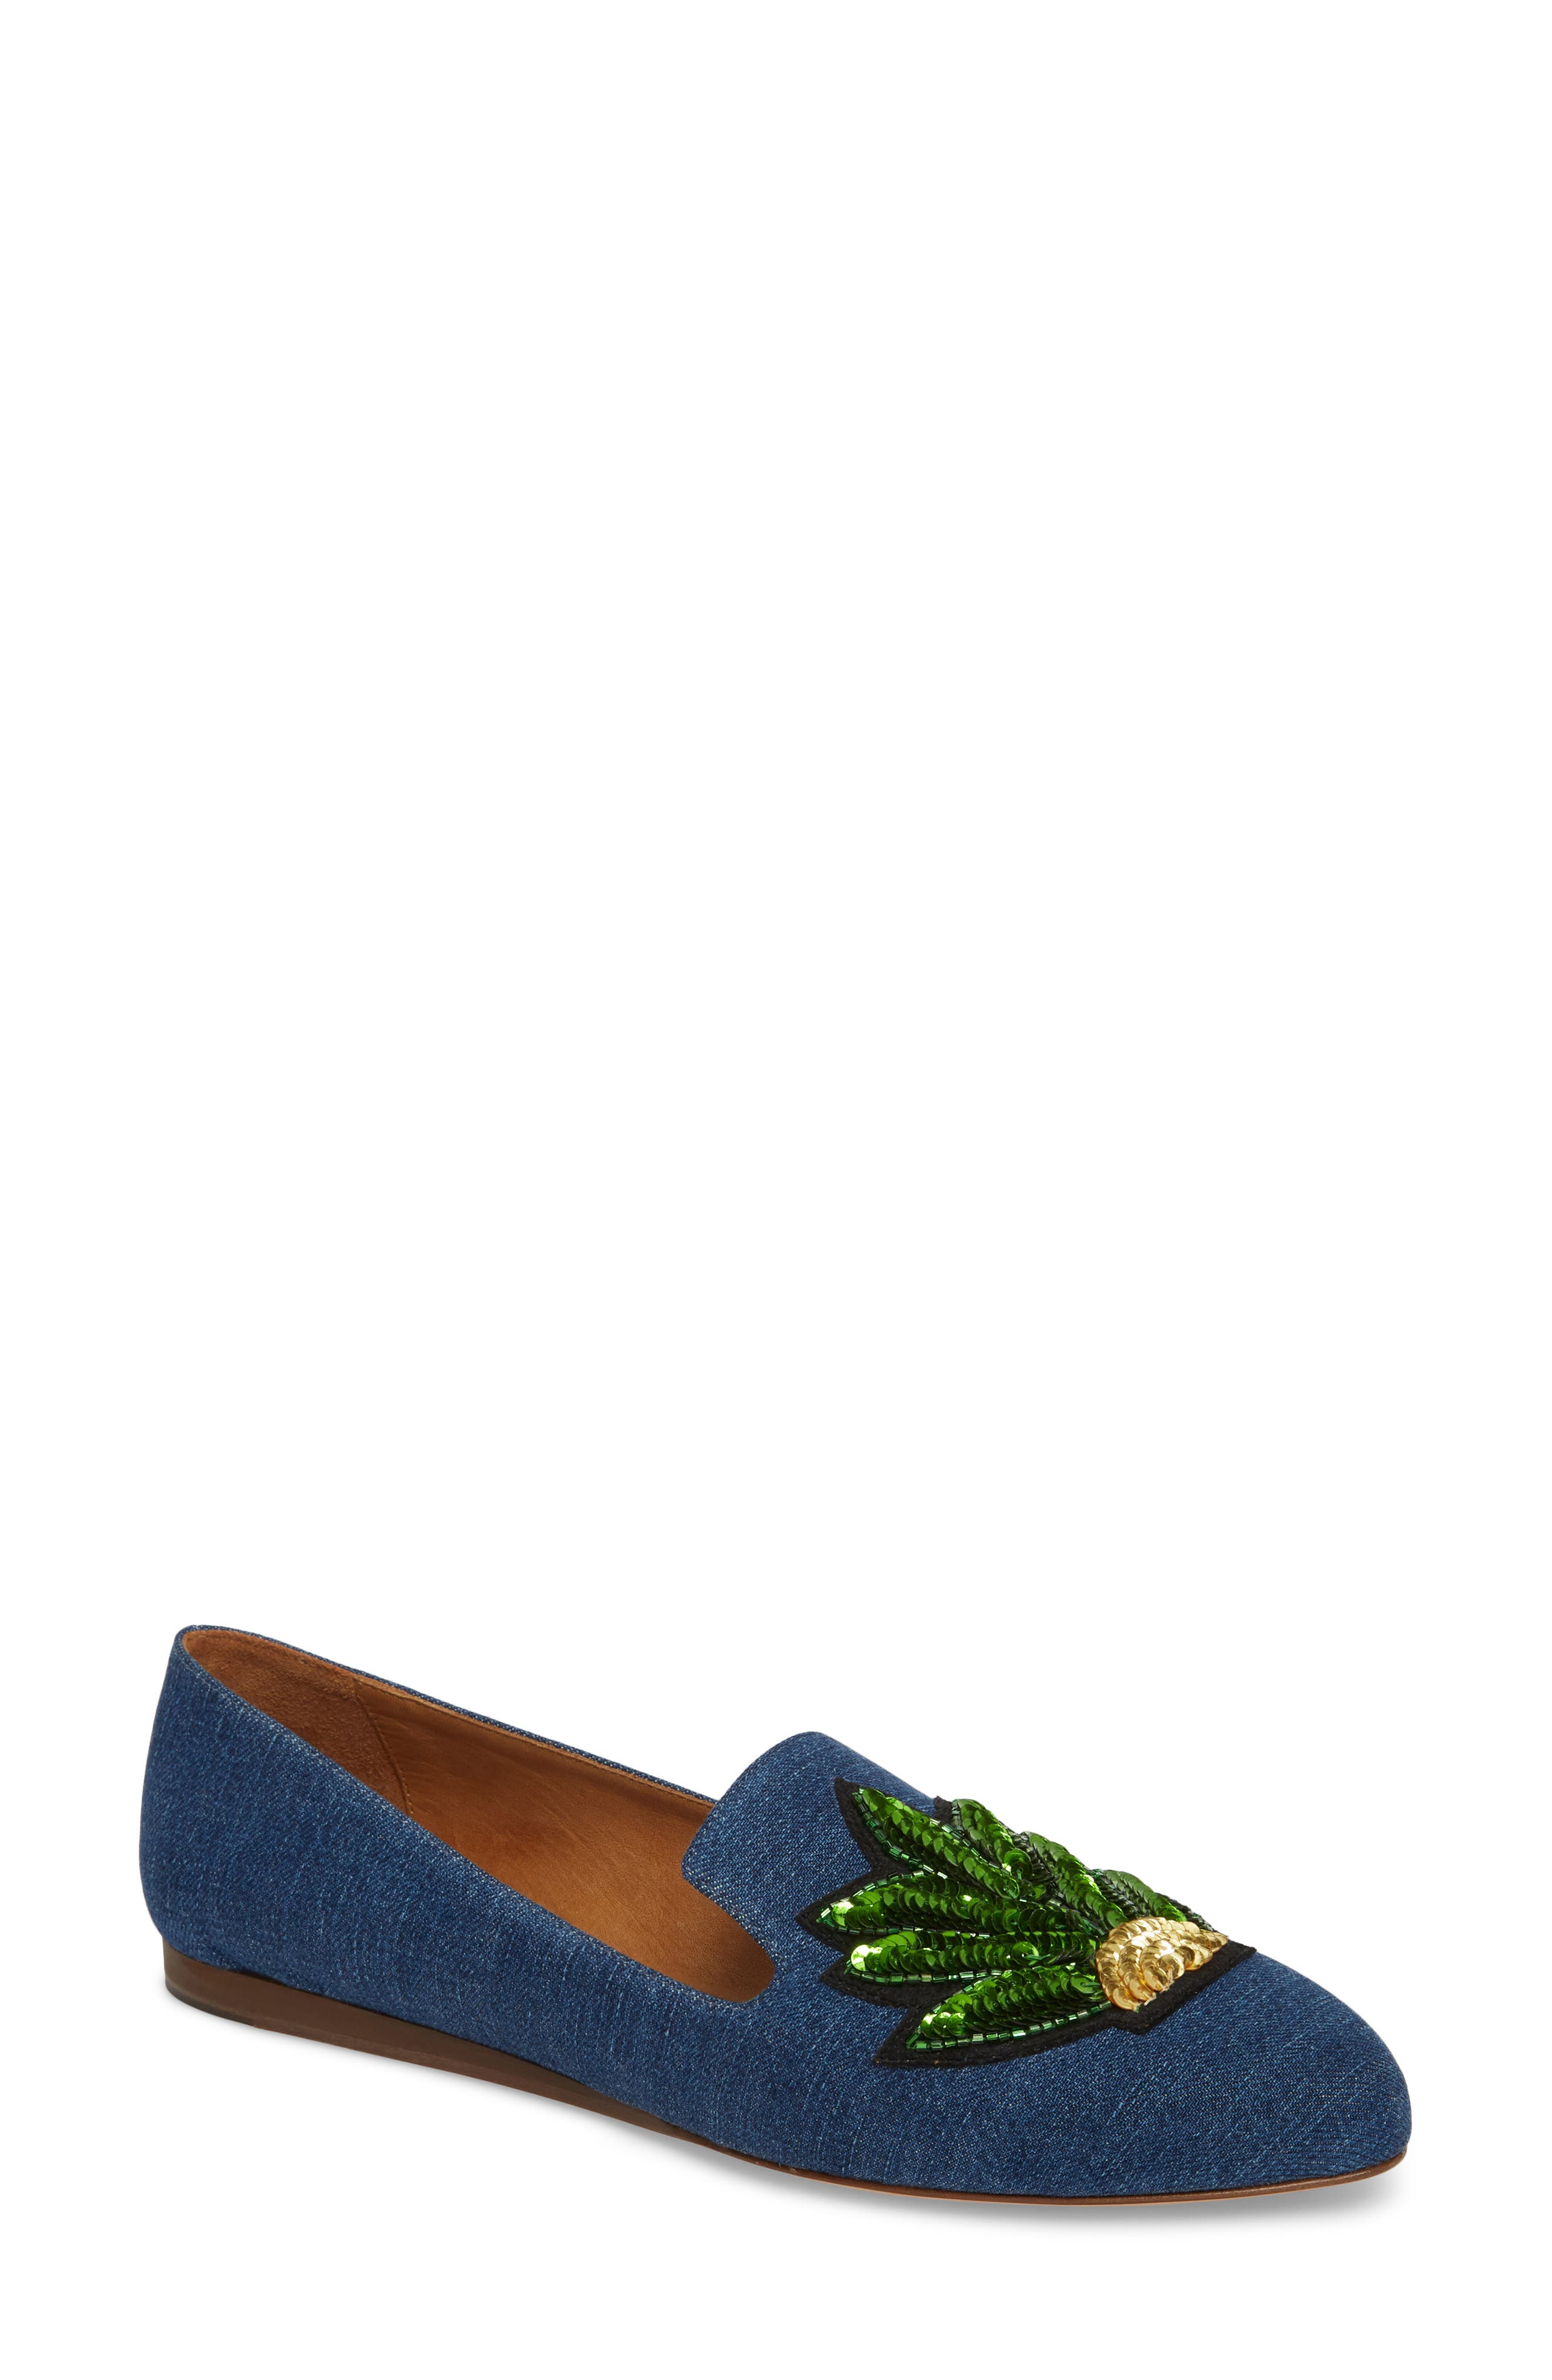 Griffin Pointy Toe Loafer,                             Main thumbnail 1, color,                             Chambray